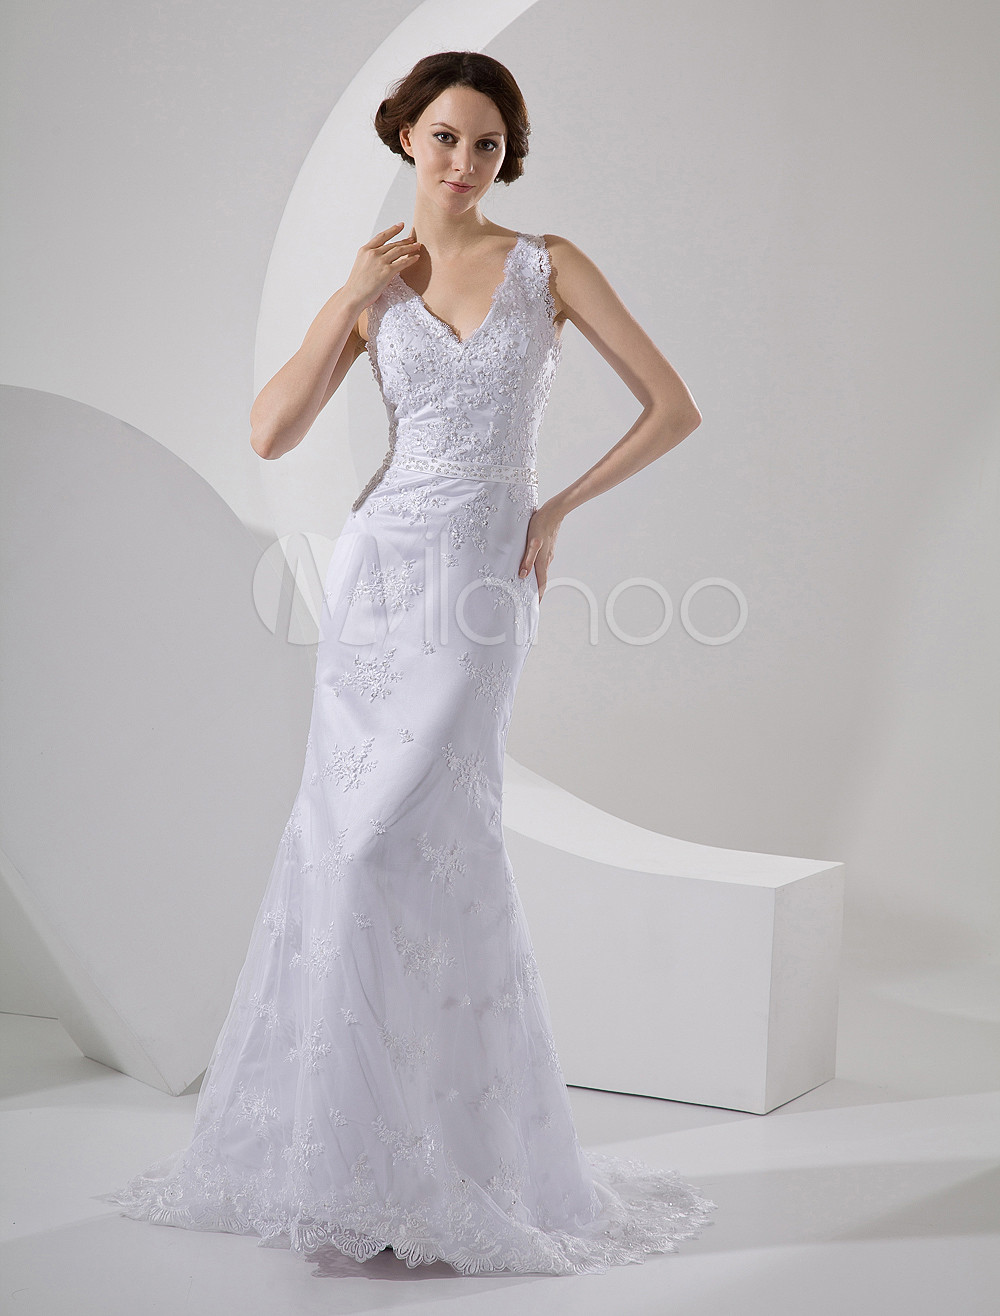 Buy Lace Grace Sheath V-Neck Embroidery Satin Wedding Dress for $208.24 in Milanoo store